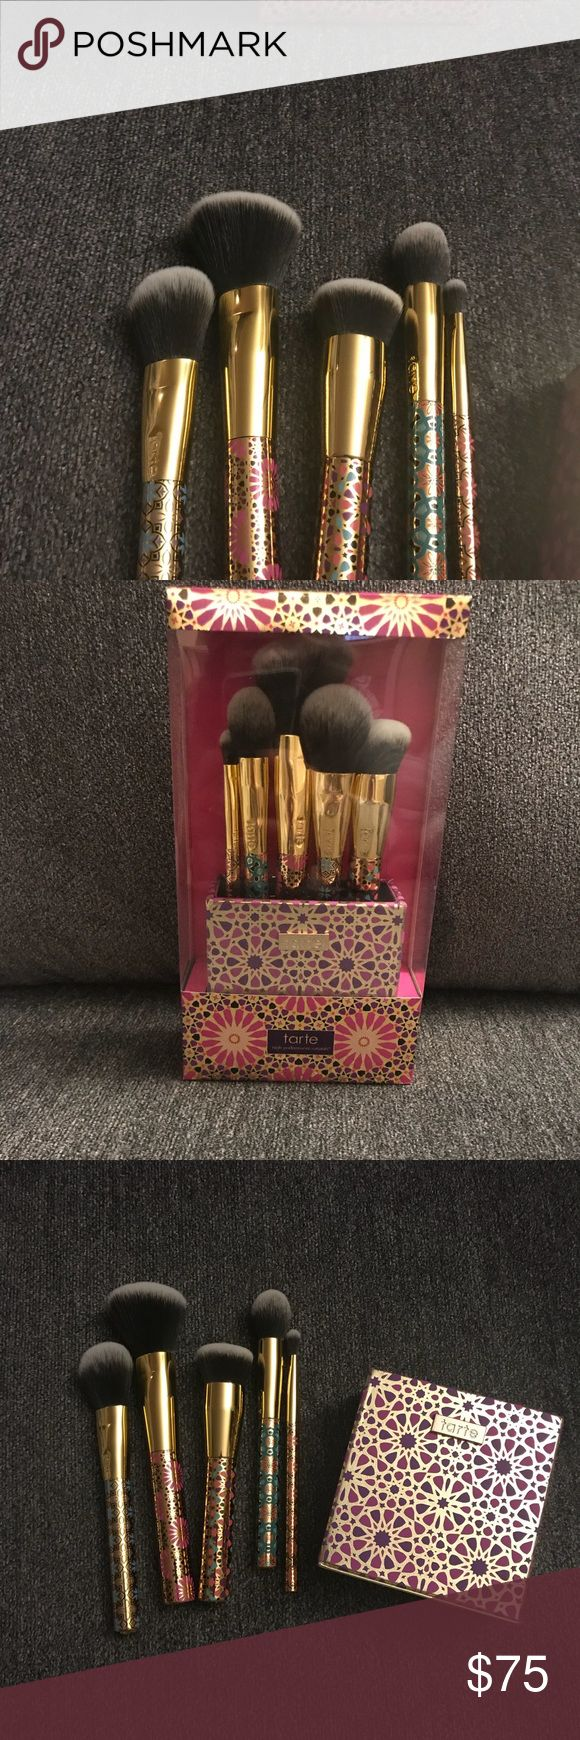 Tarte makeup brush set Brand new in the box, I received two for Christmas. tarte Makeup Brushes & Tools